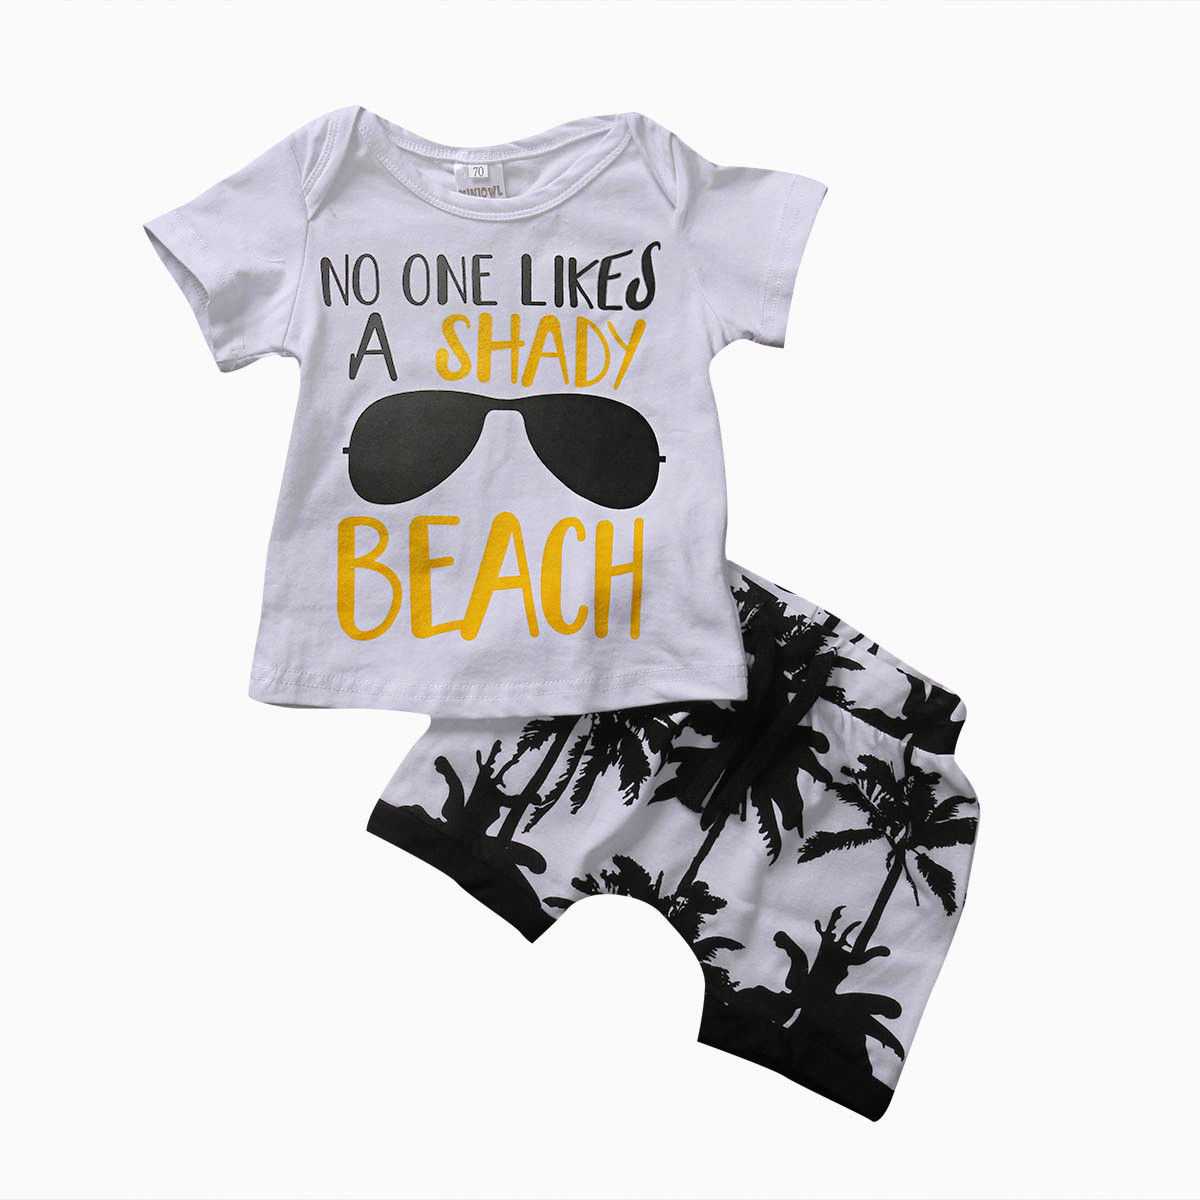 2pcs Toddler Kids Baby Boy Letter Print T-shirt Tops+Shorts Pants Summer Boys Clothes Outfits Set Cotton Children Clothing number series no 5 print toddler boy shirts 2016 baby boys t shirt brand designer t shirt summer boys clothes children s tops